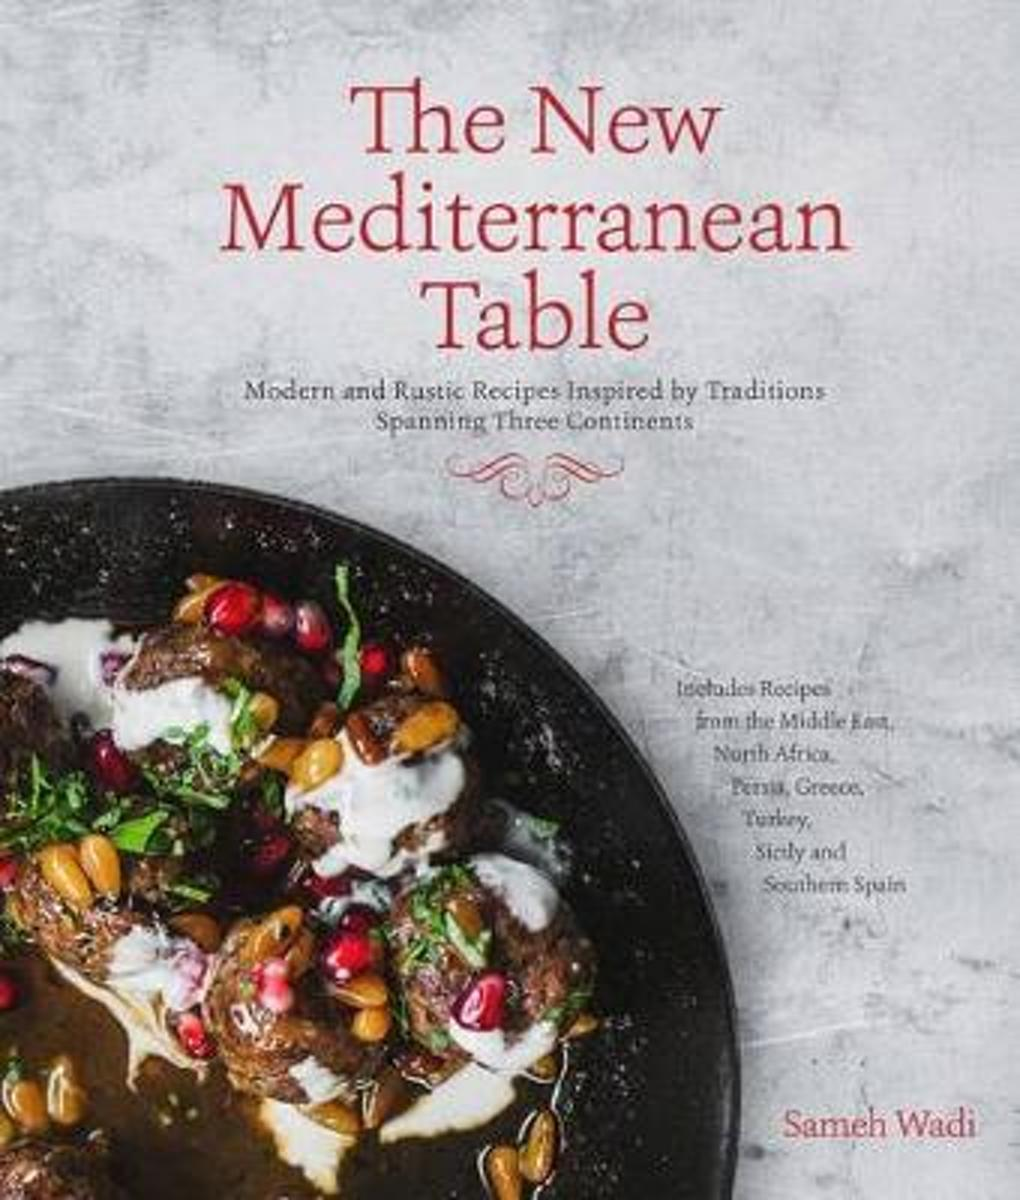 The New Mediterranean Table